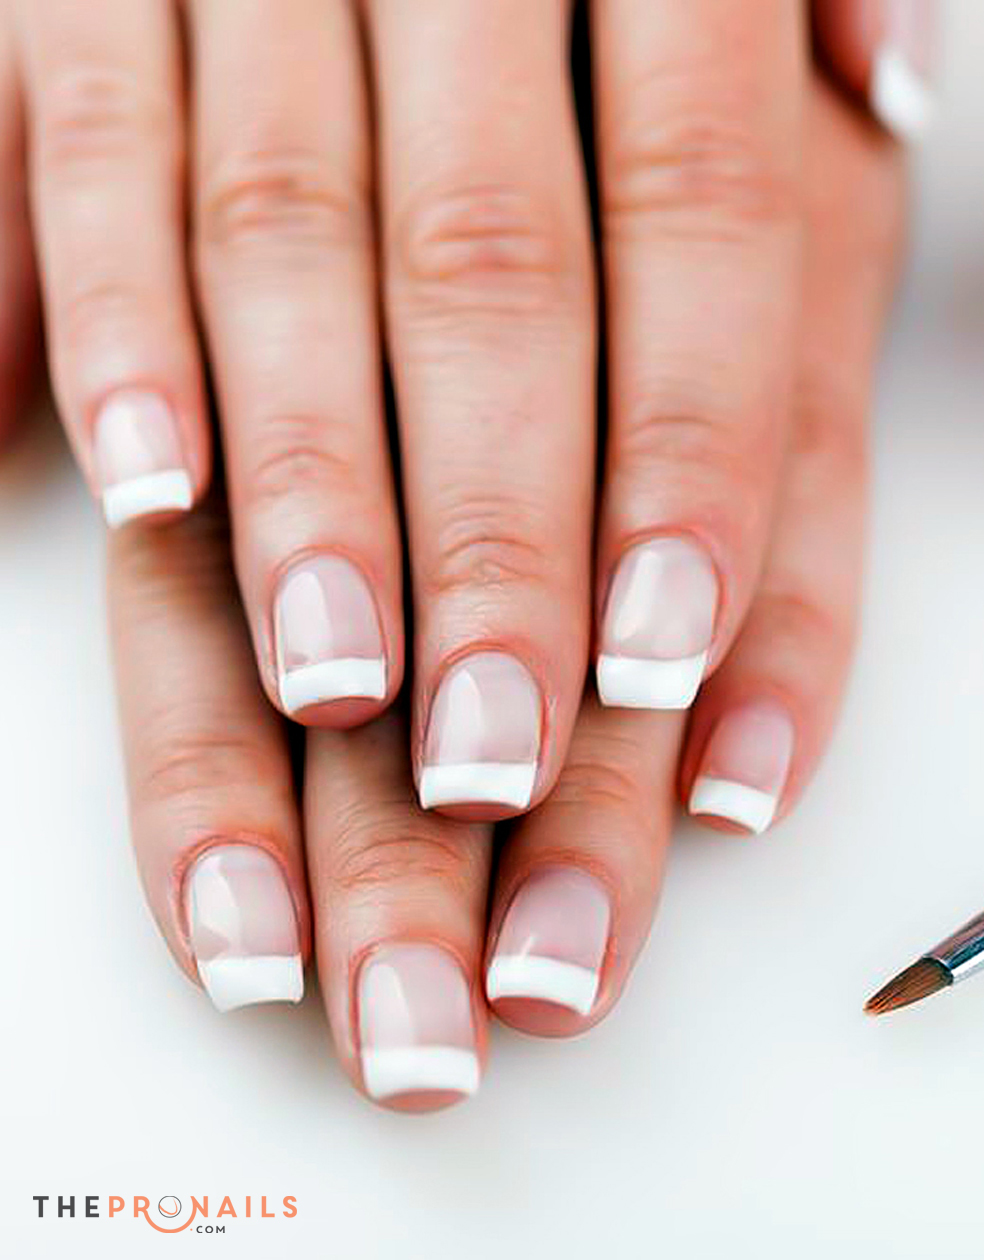 Acrylic Nails. Your nail technician will mix a liquid with a powder and brush the mixture onto your nails. They'll usually cover your entire nail, ...